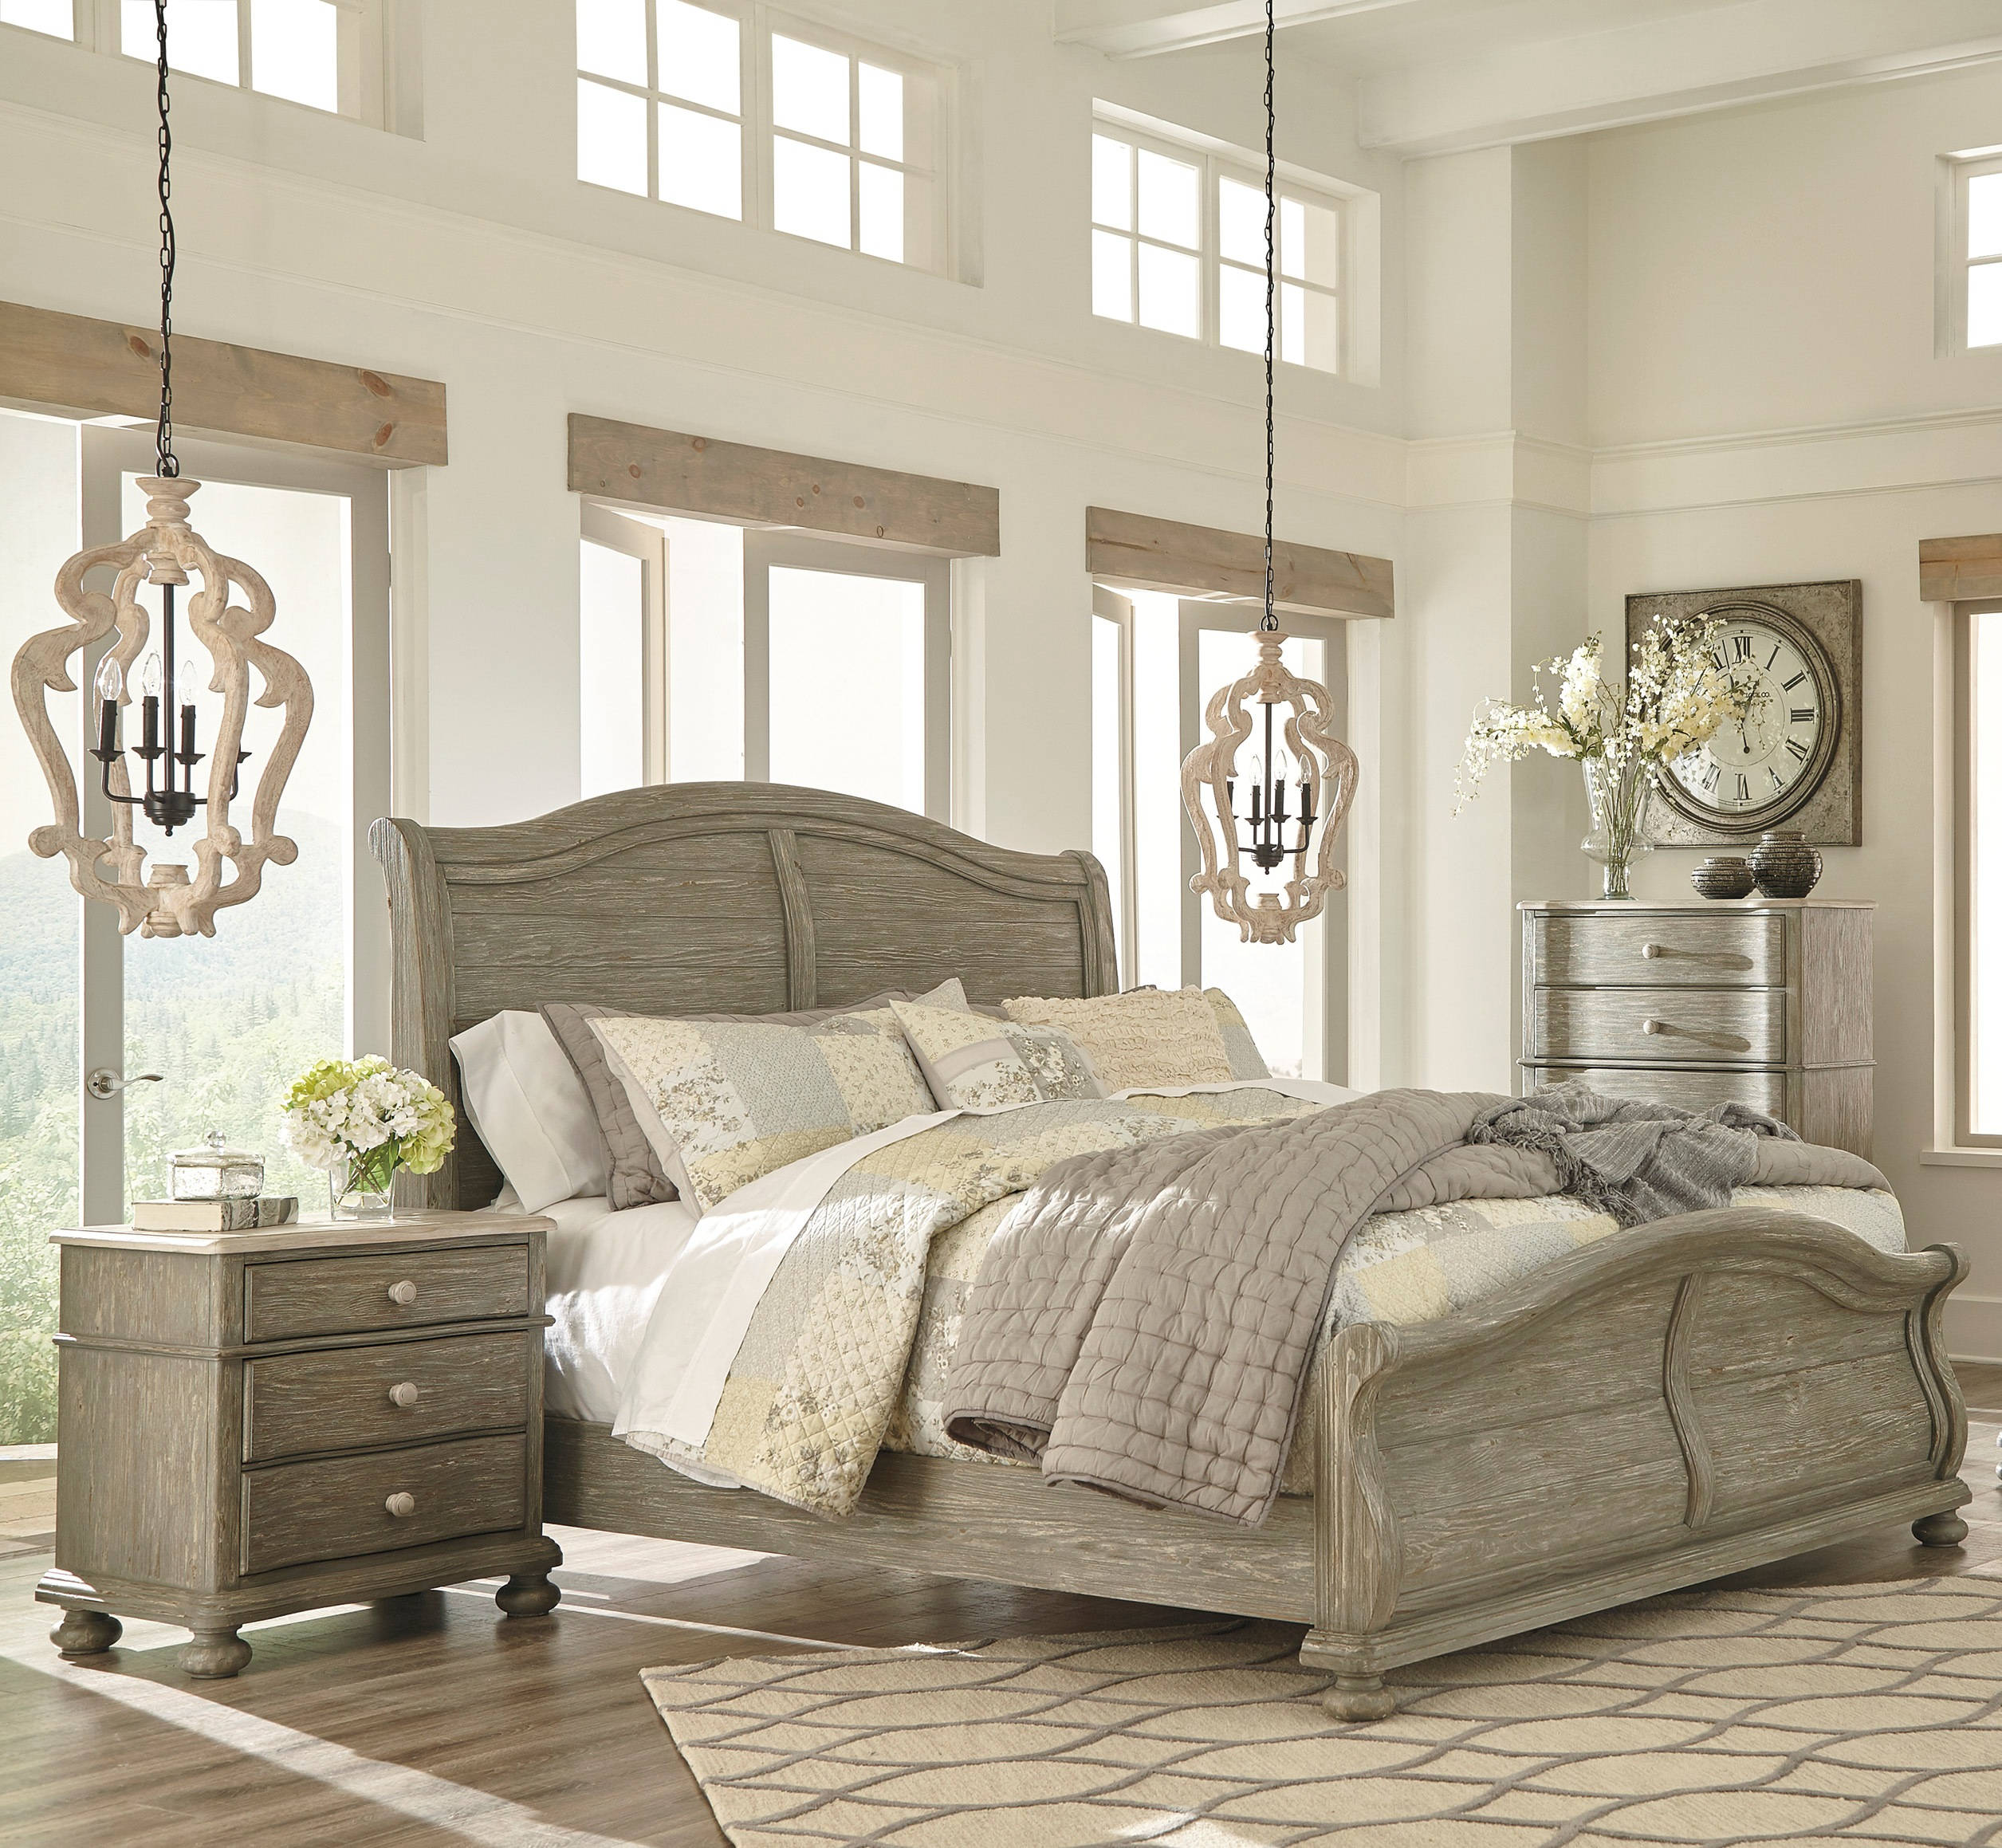 Ashley Furniture Discontinued: Ashley Furniture Marleny 2pc Bedroom Set With Queen Sleigh